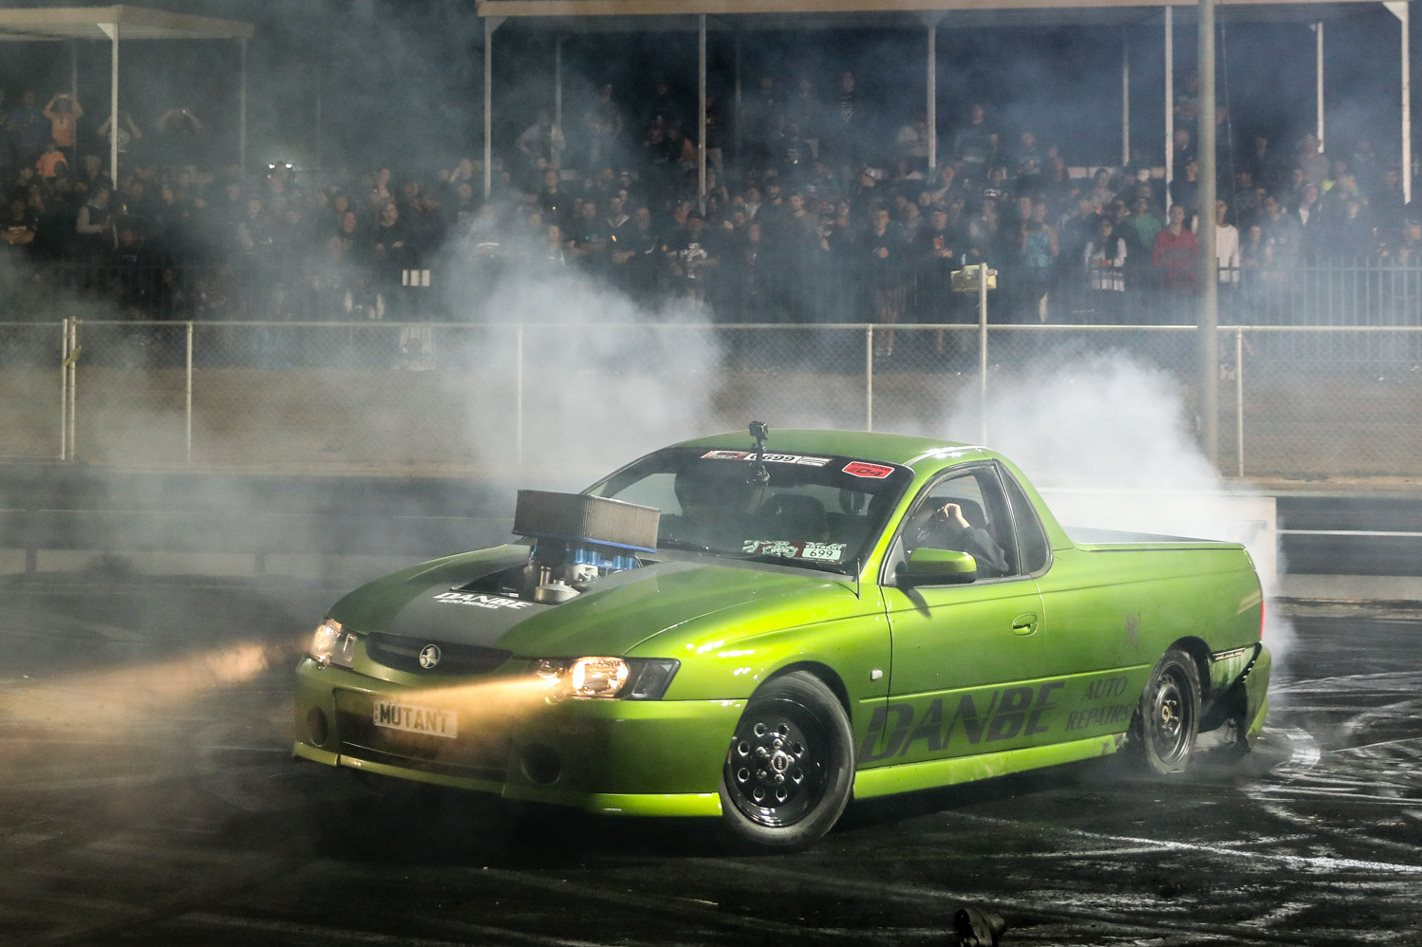 My Kia Performance >> 410ci sprint car engined VY Ute burnout car - Video